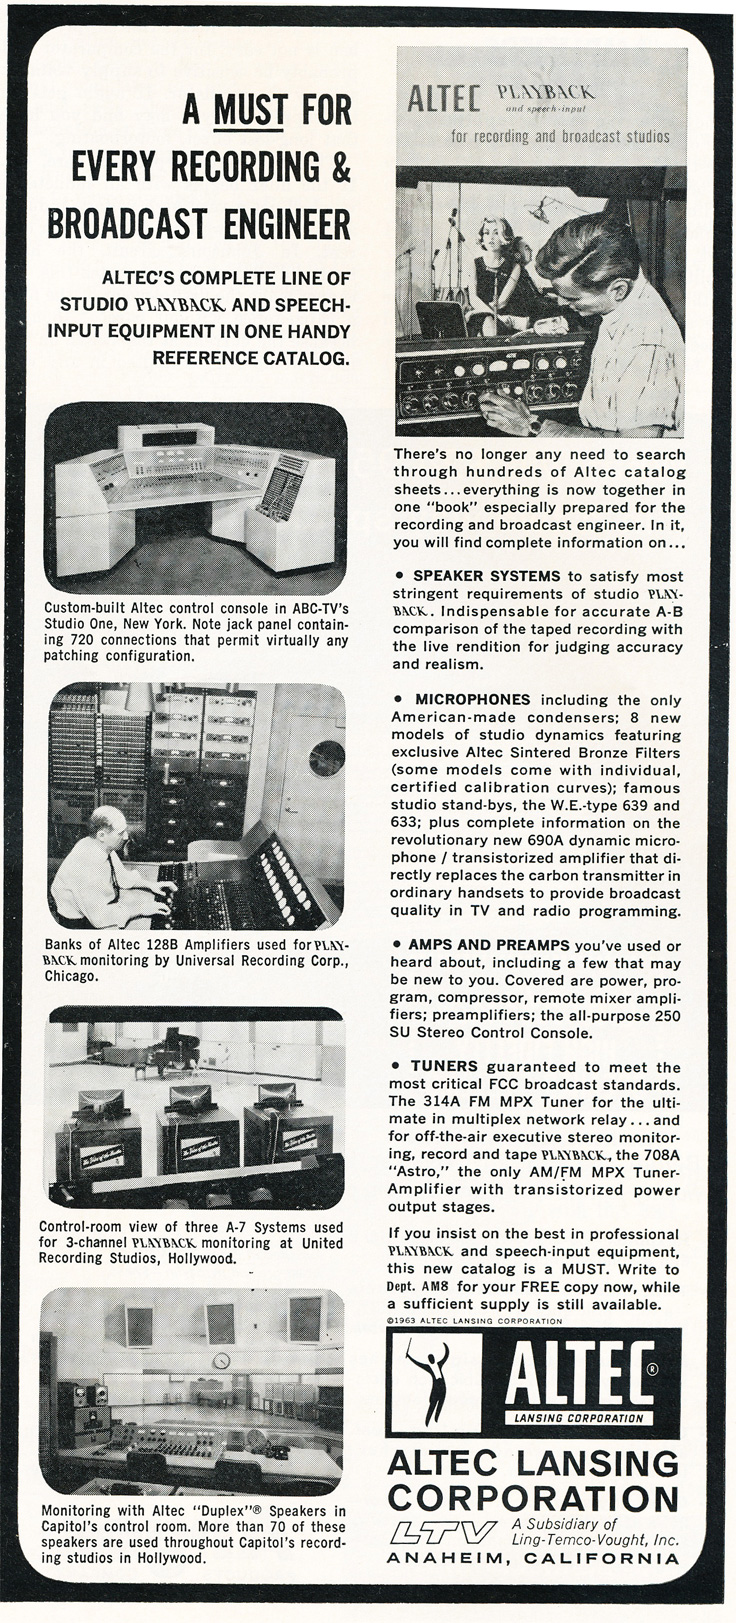 1963 ad for Altec studio equipment in Reel2ReelTexas.com's vintage recording collection